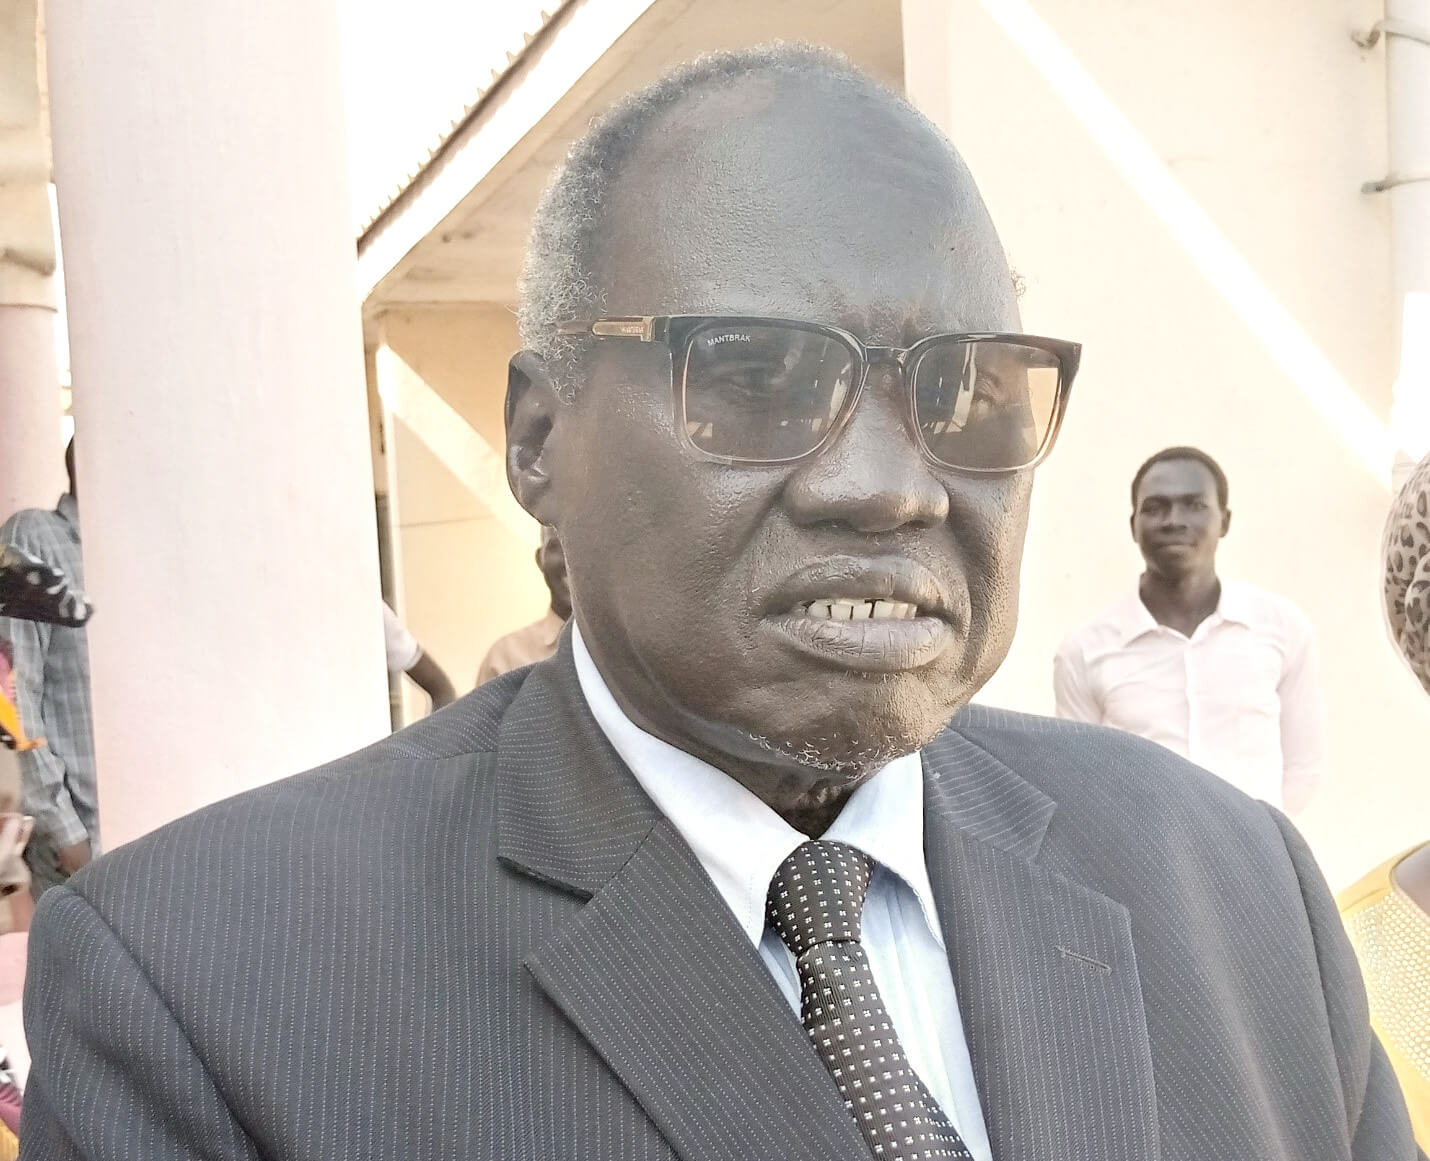 Implement peace deal before discussing elections, Onyoti